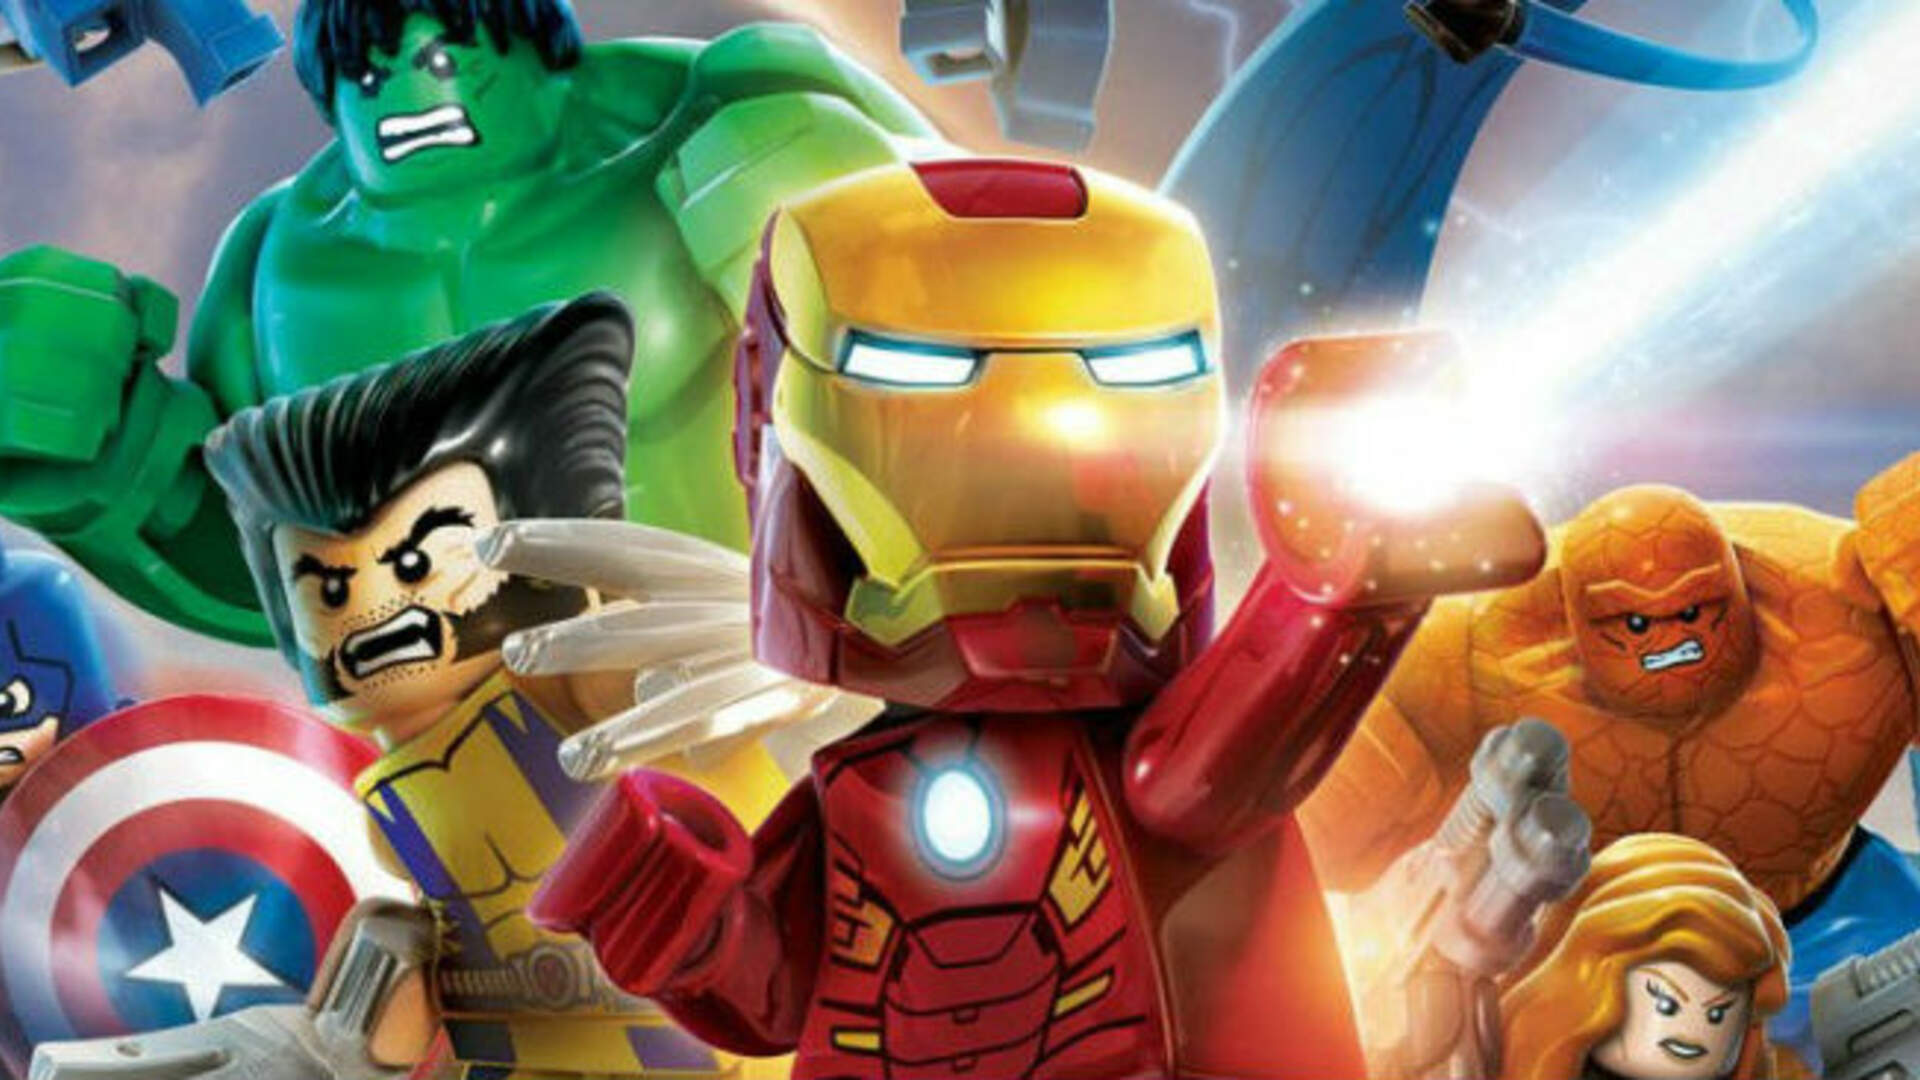 LEGO Marvel Superheroes Cheat Codes and Stud Unlocks